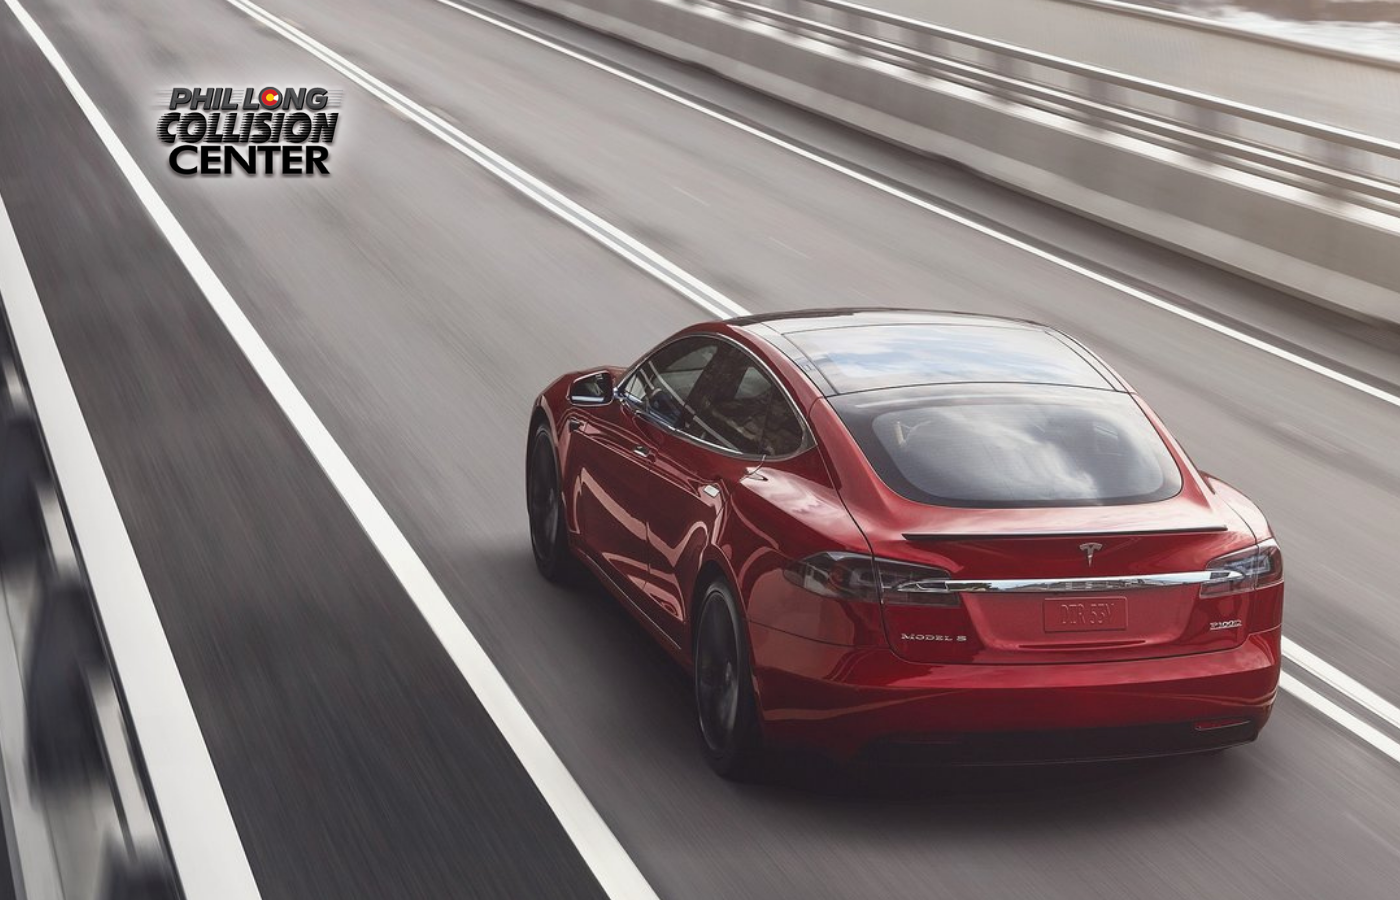 Red 2017 Tesla Model S driving on a highway headed towards an avoidable collision with the Phil Long Collision Center logo in the middle of the road